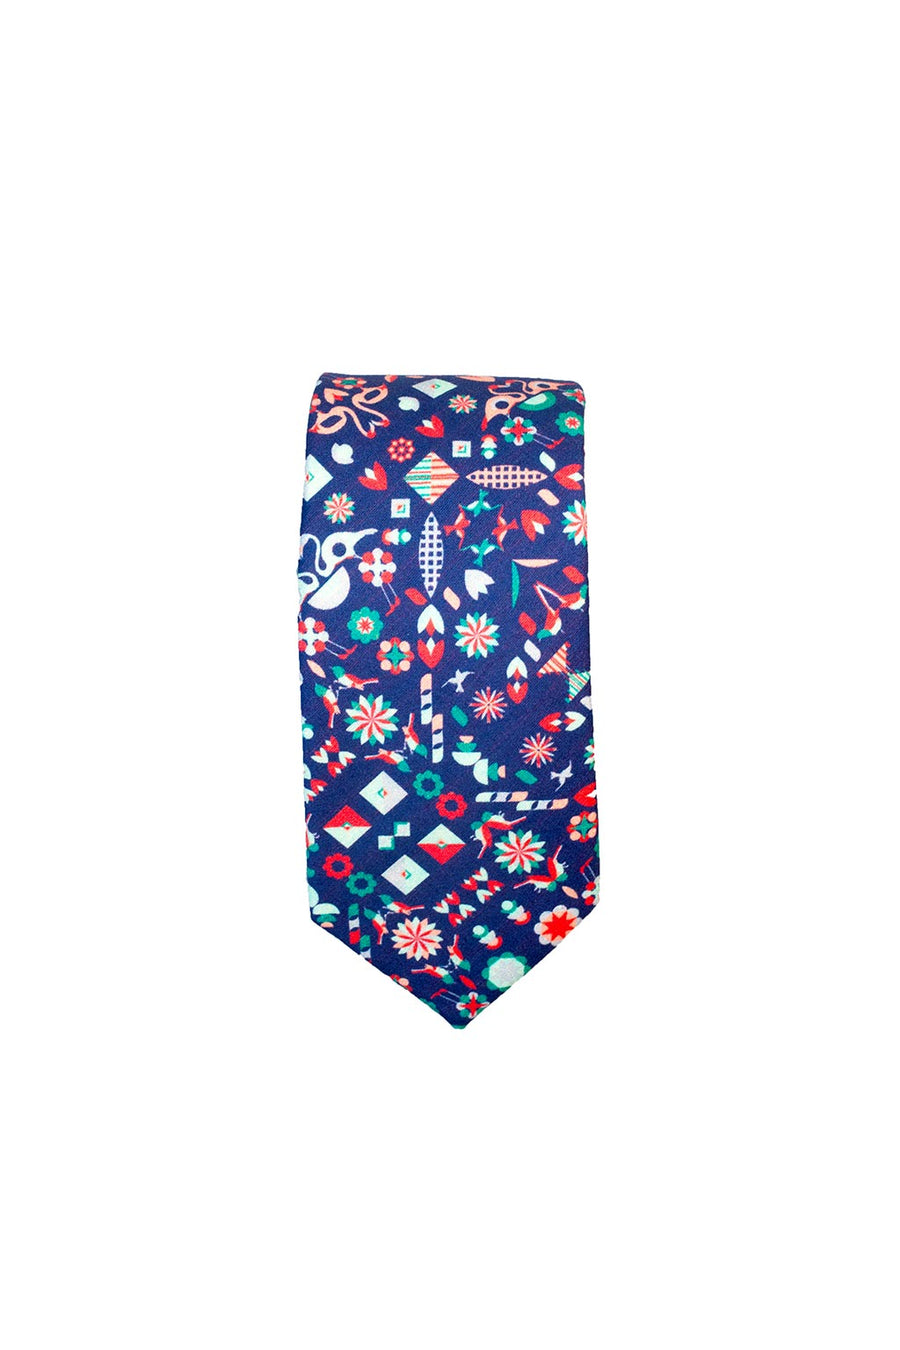 HEW clothing Tie in Blue Bird Print